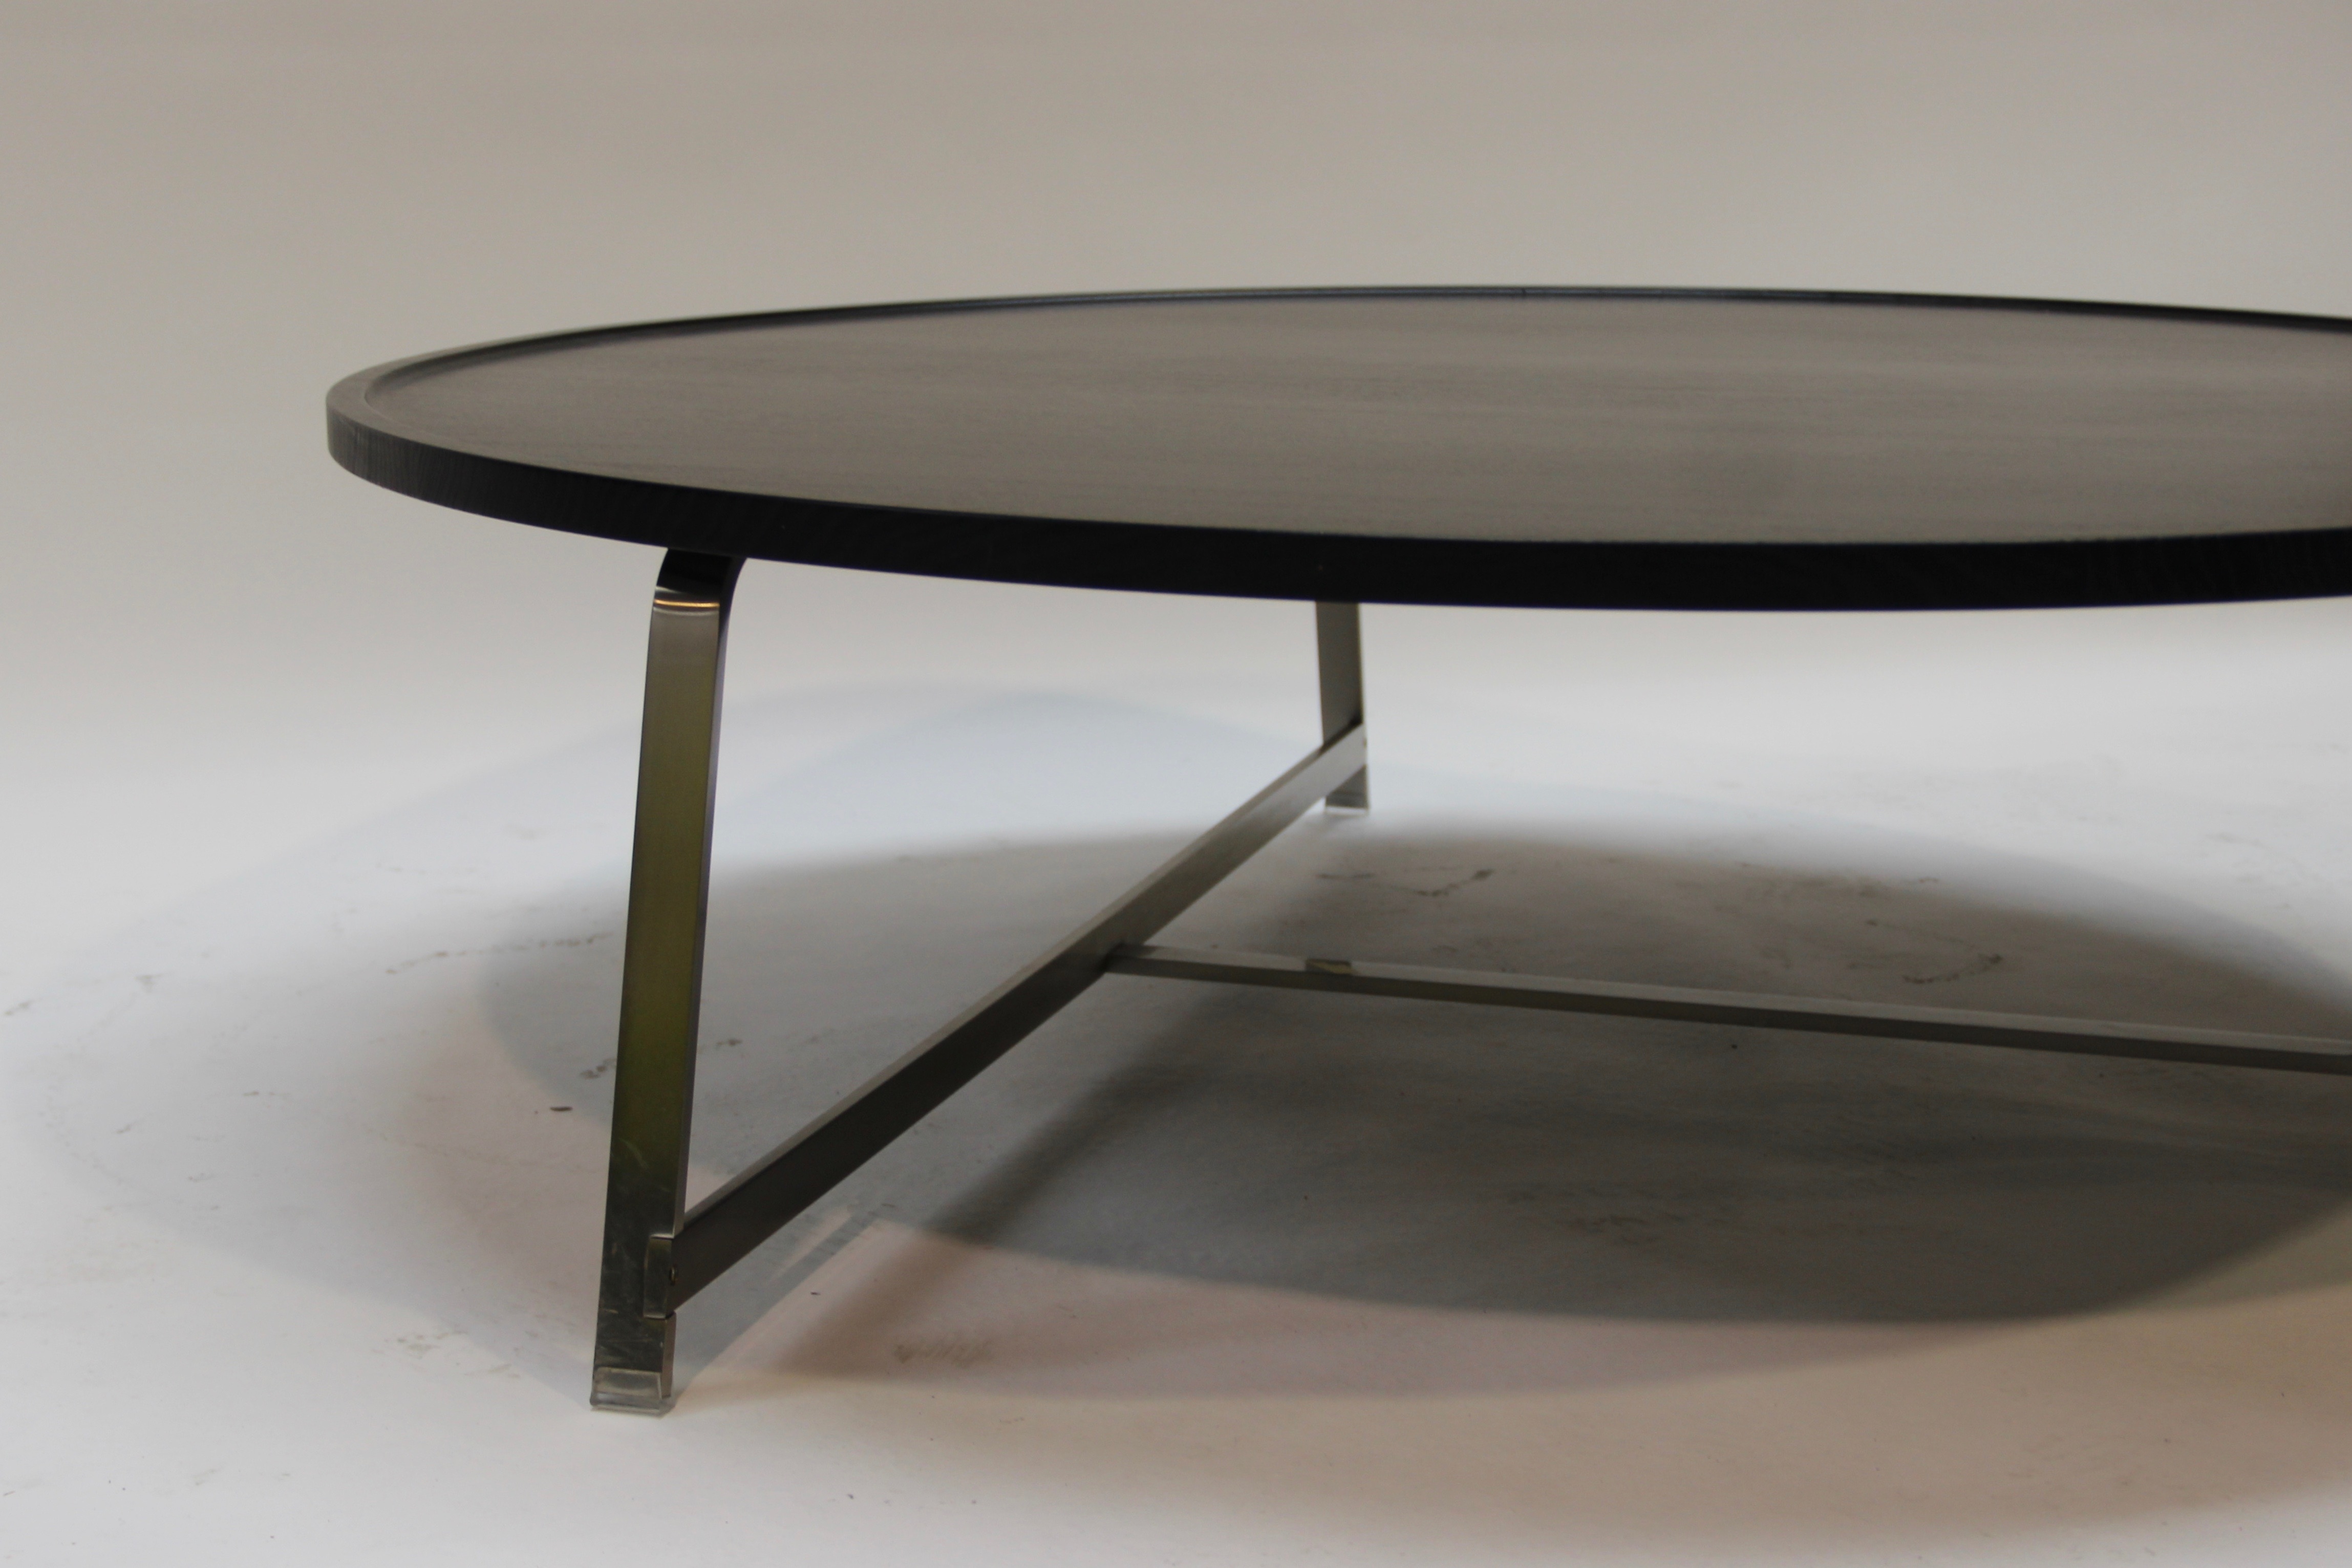 grande table basse ronde id es de d coration int rieure french decor. Black Bedroom Furniture Sets. Home Design Ideas